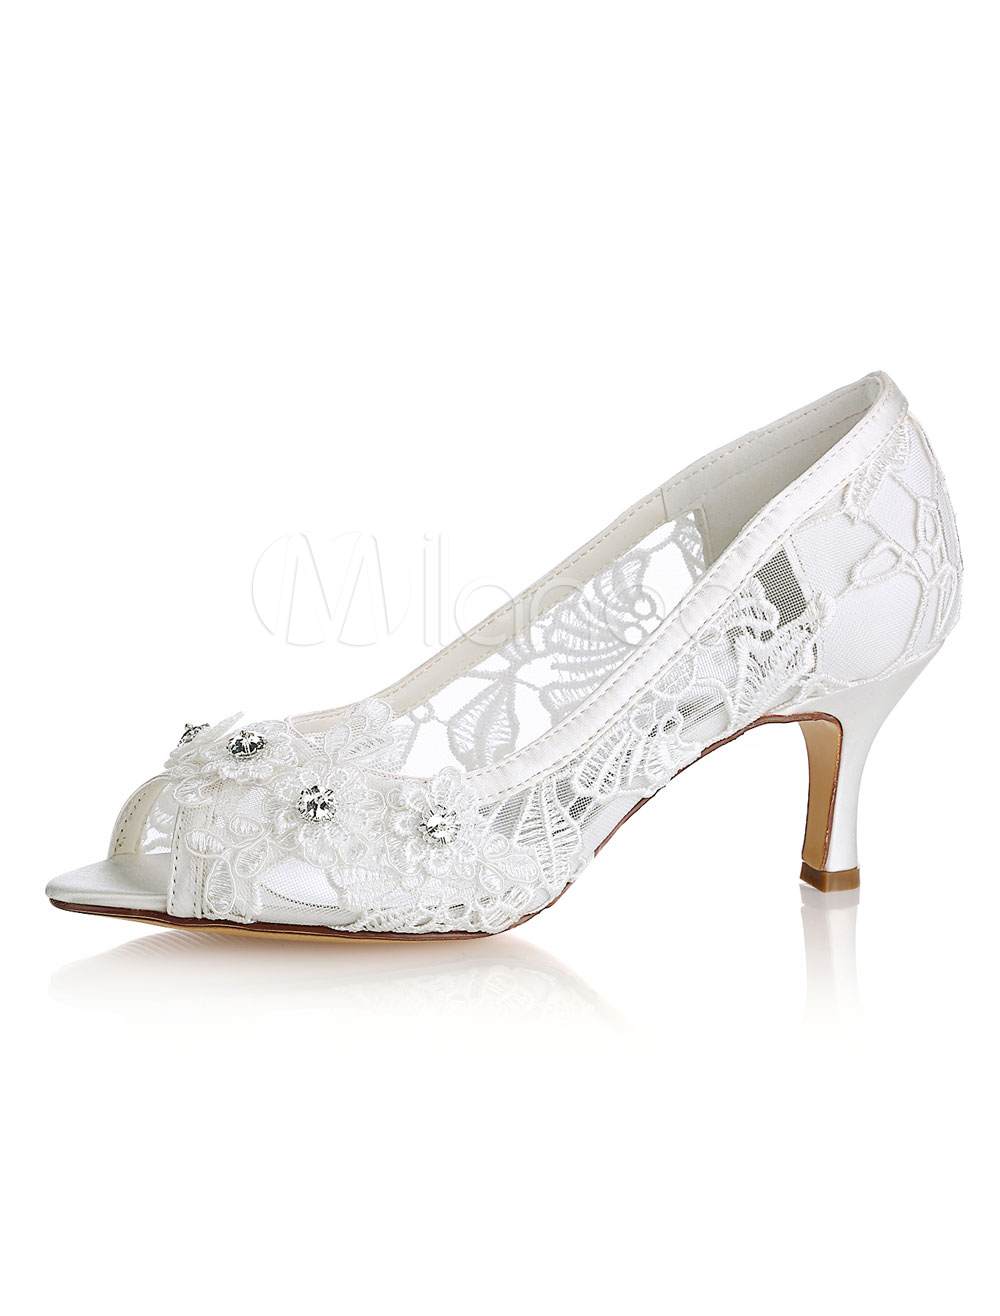 Buy Lace Wedding Shoes Ivory Peep Toe Rhinestones Kitten Heel Bridal Shoes Mother Shoes for $54.99 in Milanoo store